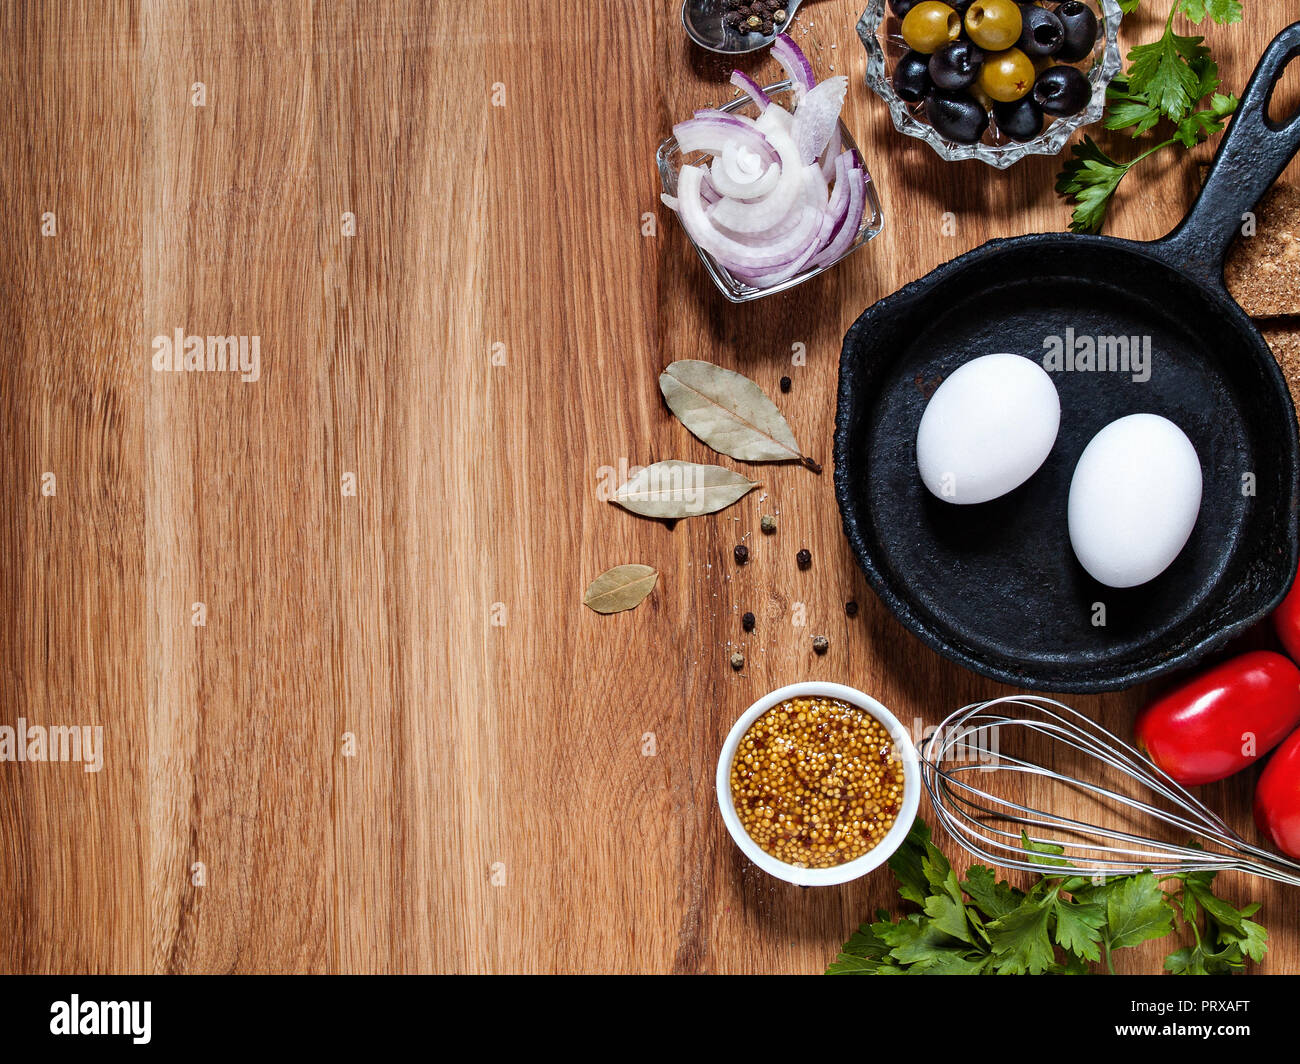 On a wooden background horizontally with copyscera chicken eggs in a cast iron pan, onions, olives, tomatoes, greens, a beater - Stock Image